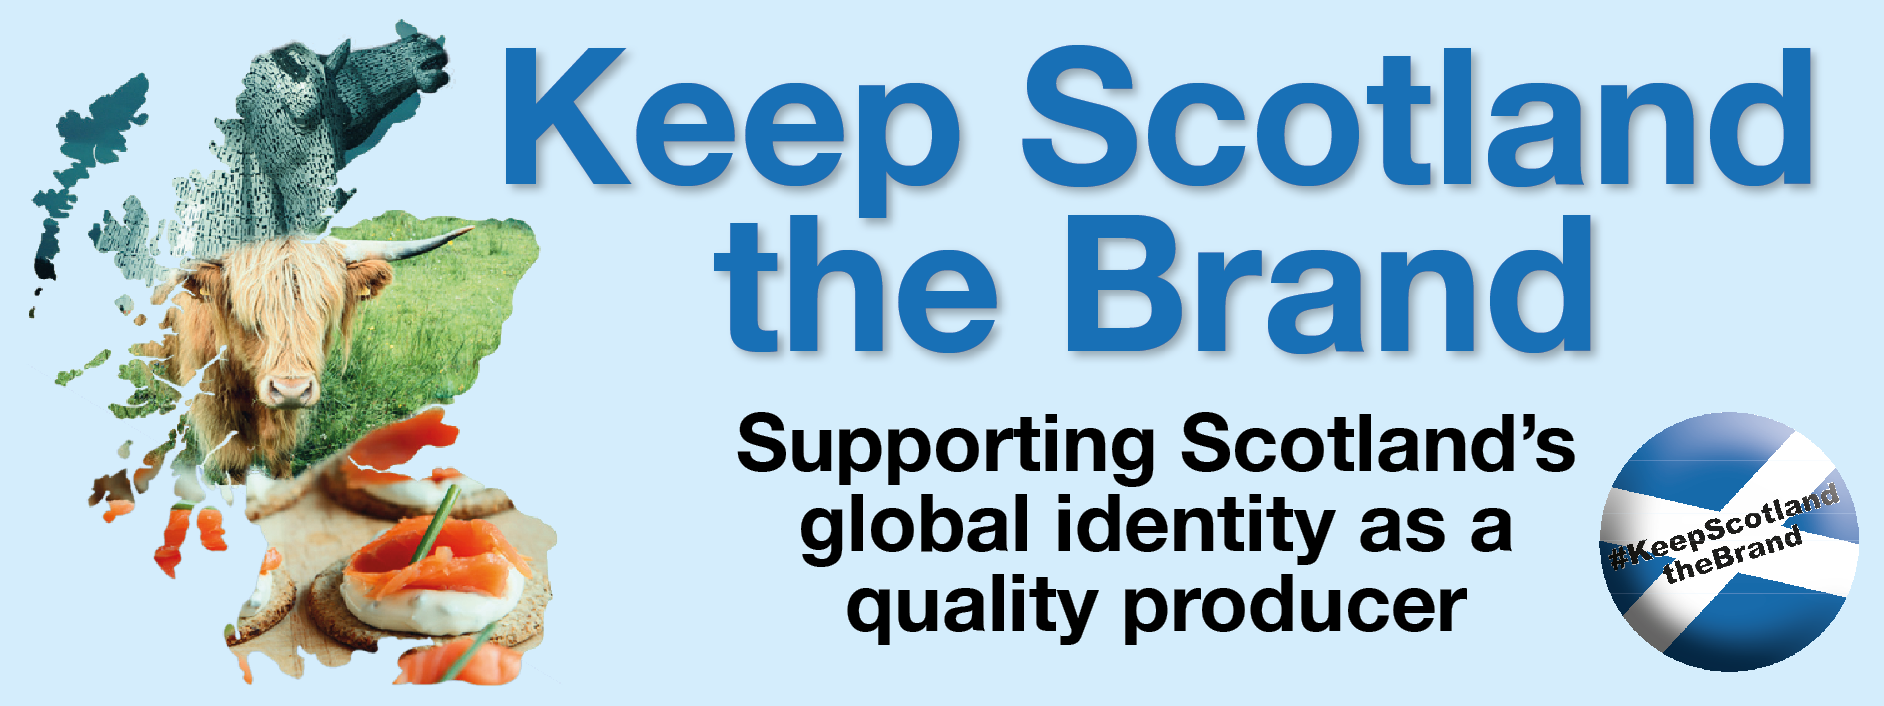 Keep Scotland the Brand banner